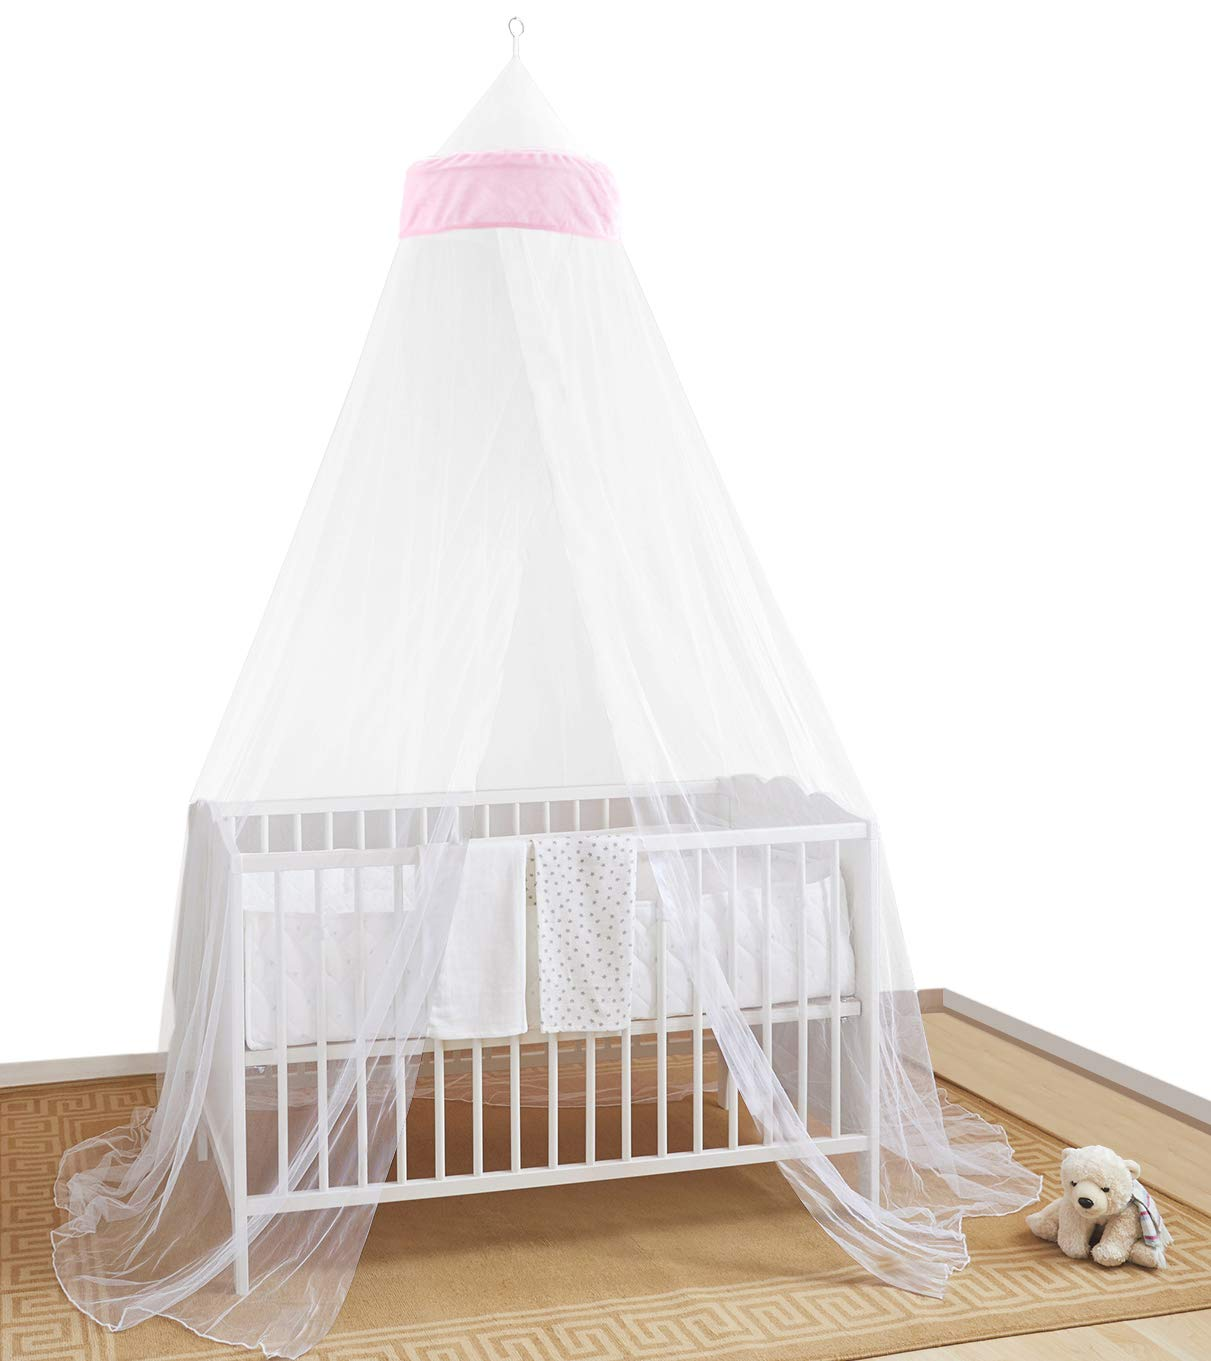 BED CANOPY INSECT PROTECTION FOR BABIES AND COTS –– Cot Accessories for Baby Girls and Toddlers Against, Insects, Spiders, Mosquitoes and More Easy to Install Home and More Store Ltd